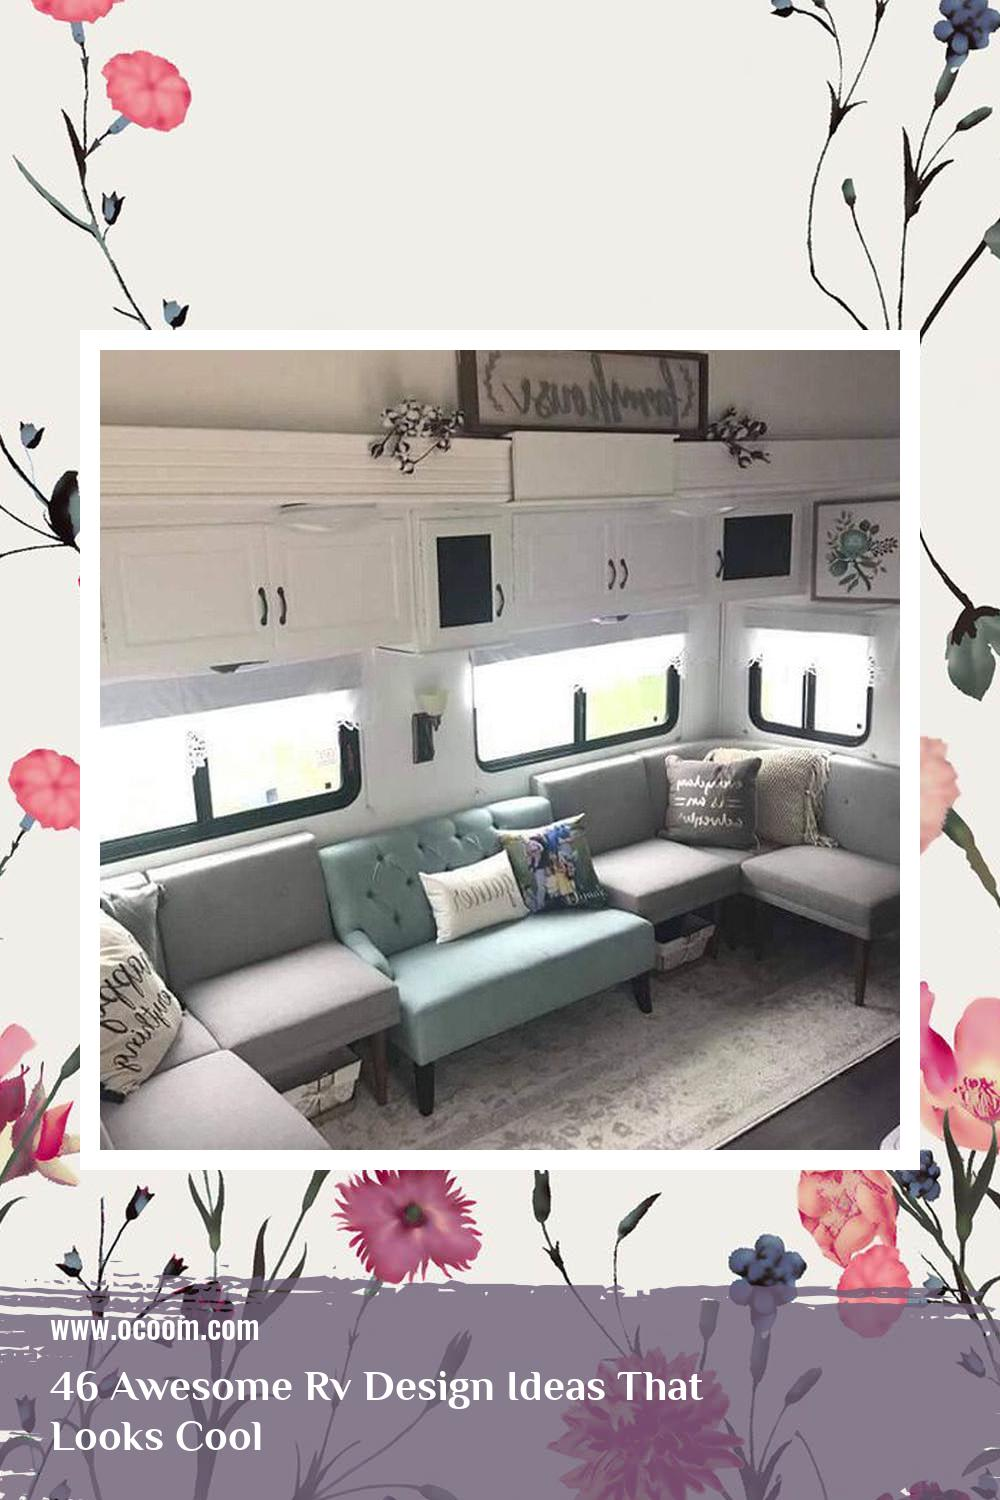 46 Awesome Rv Design Ideas That Looks Cool 15